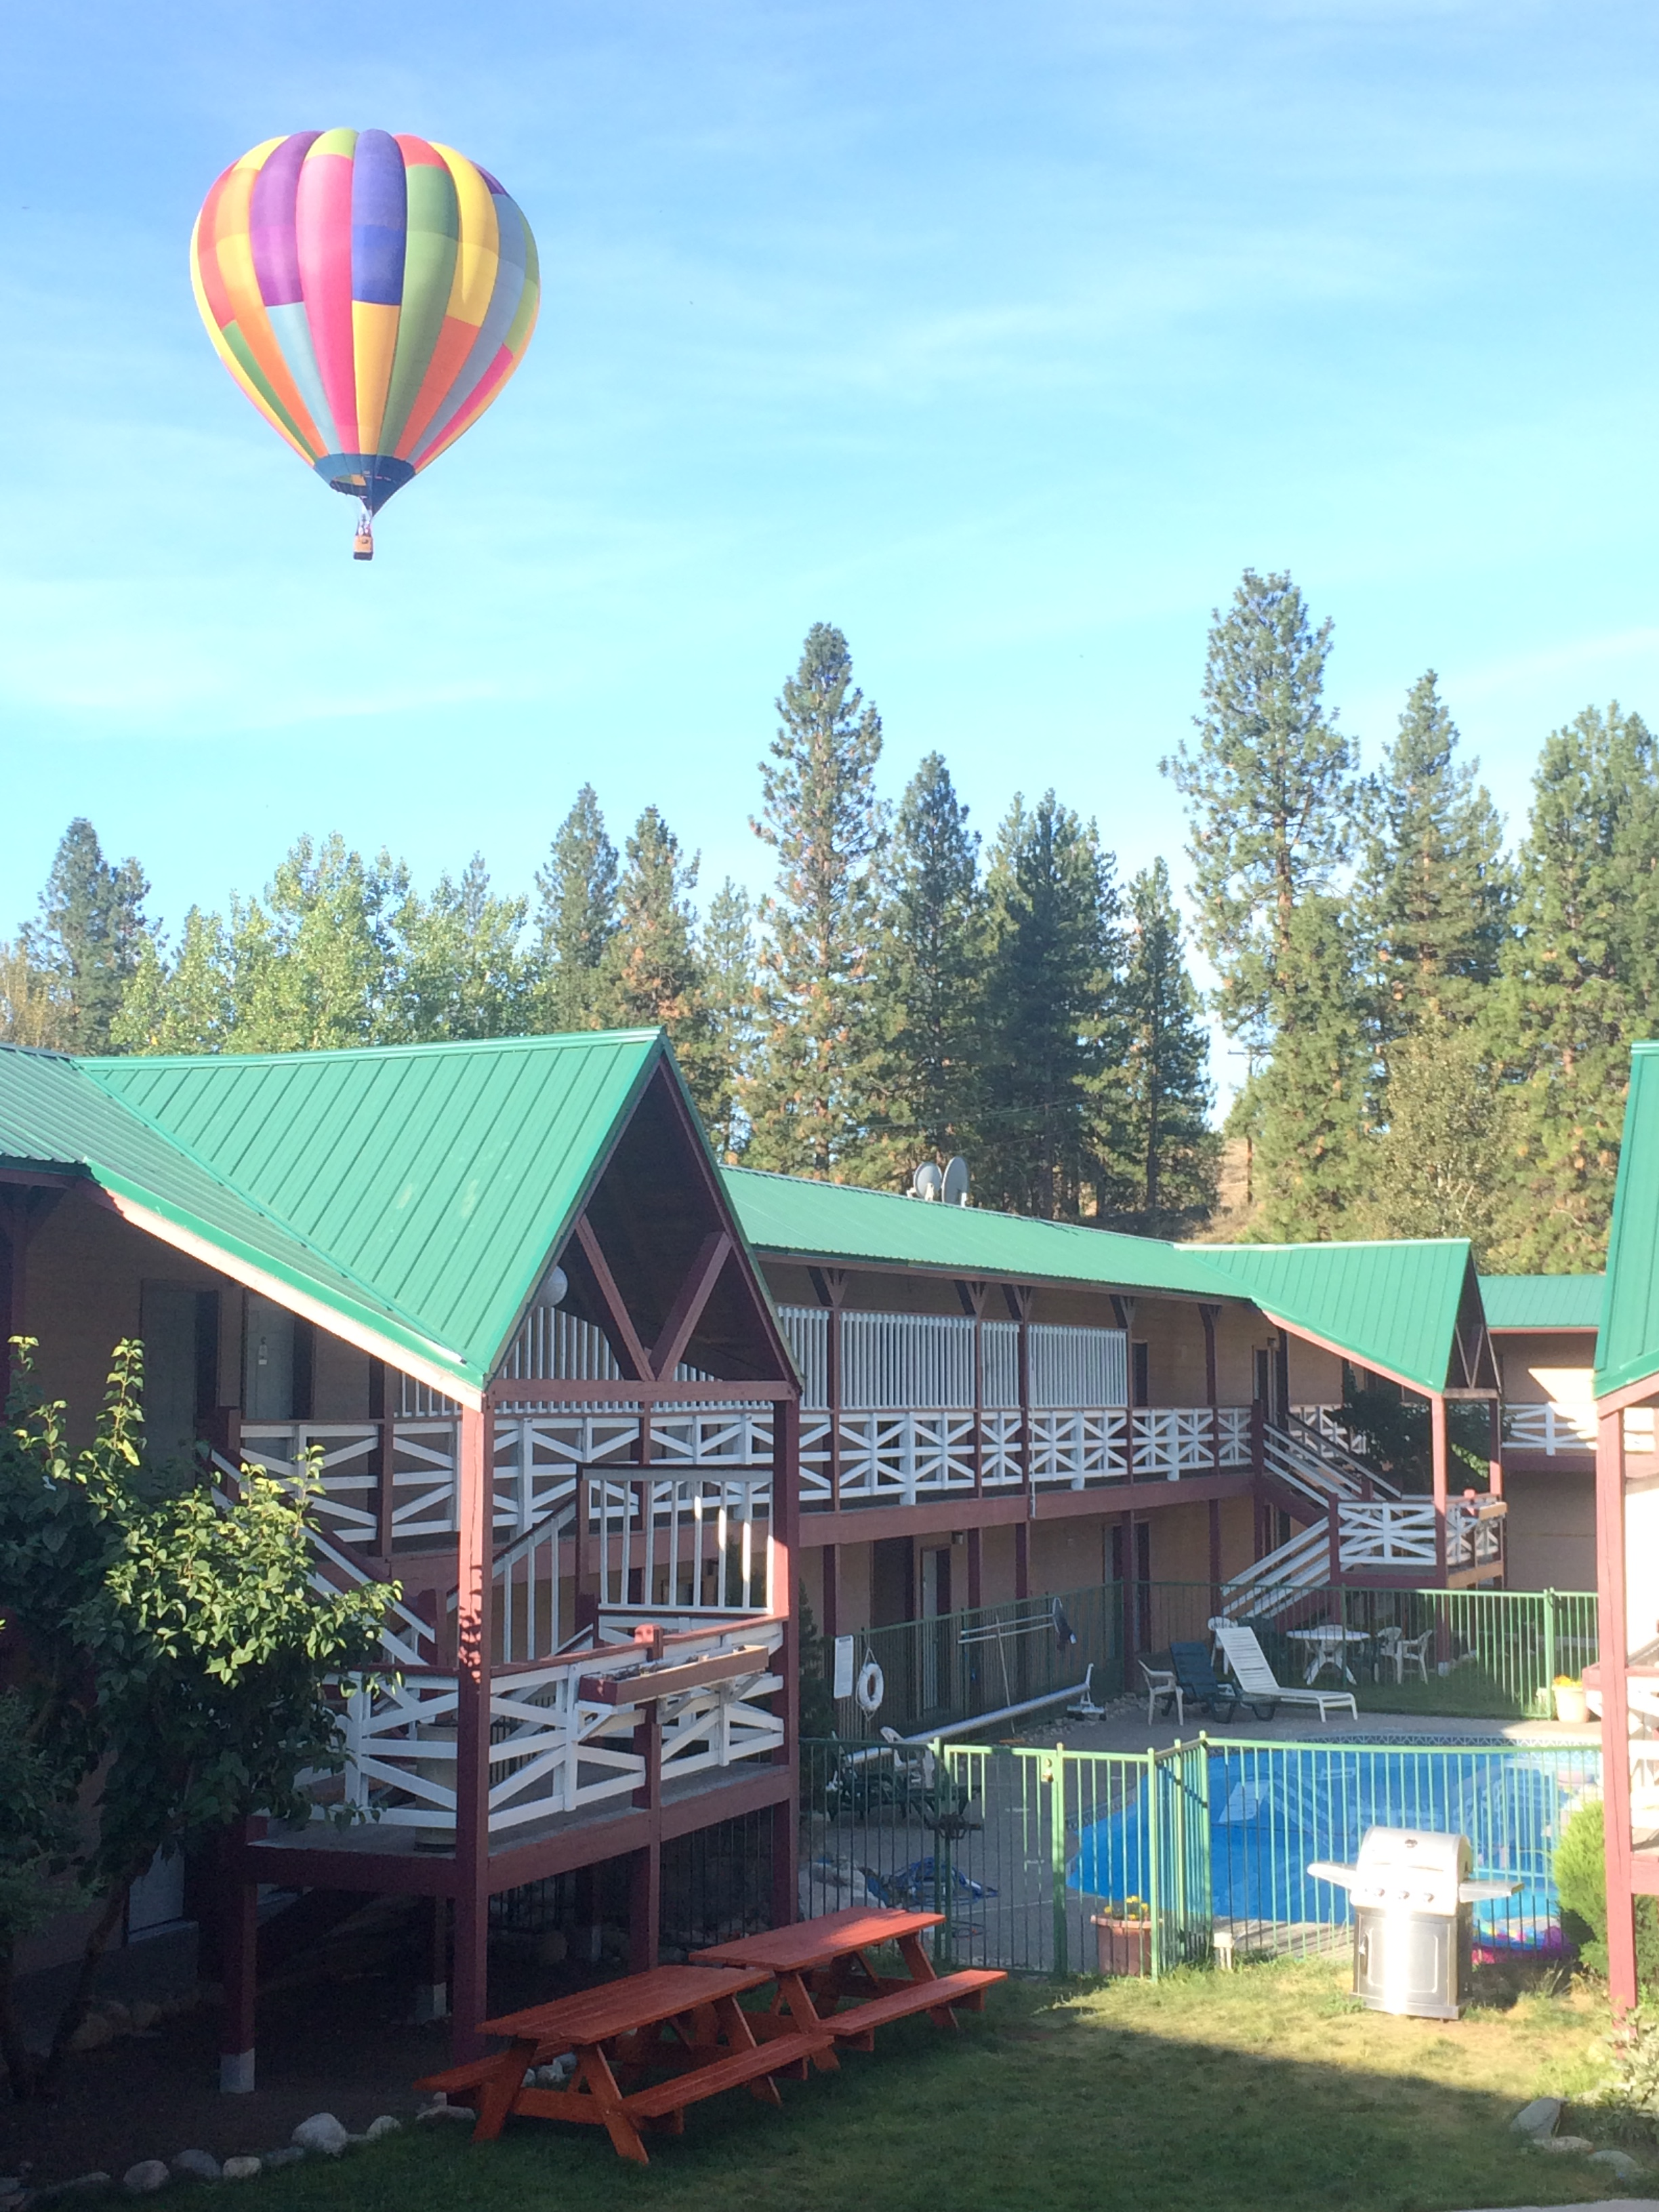 AbbyCreek Hotel Air Balloon